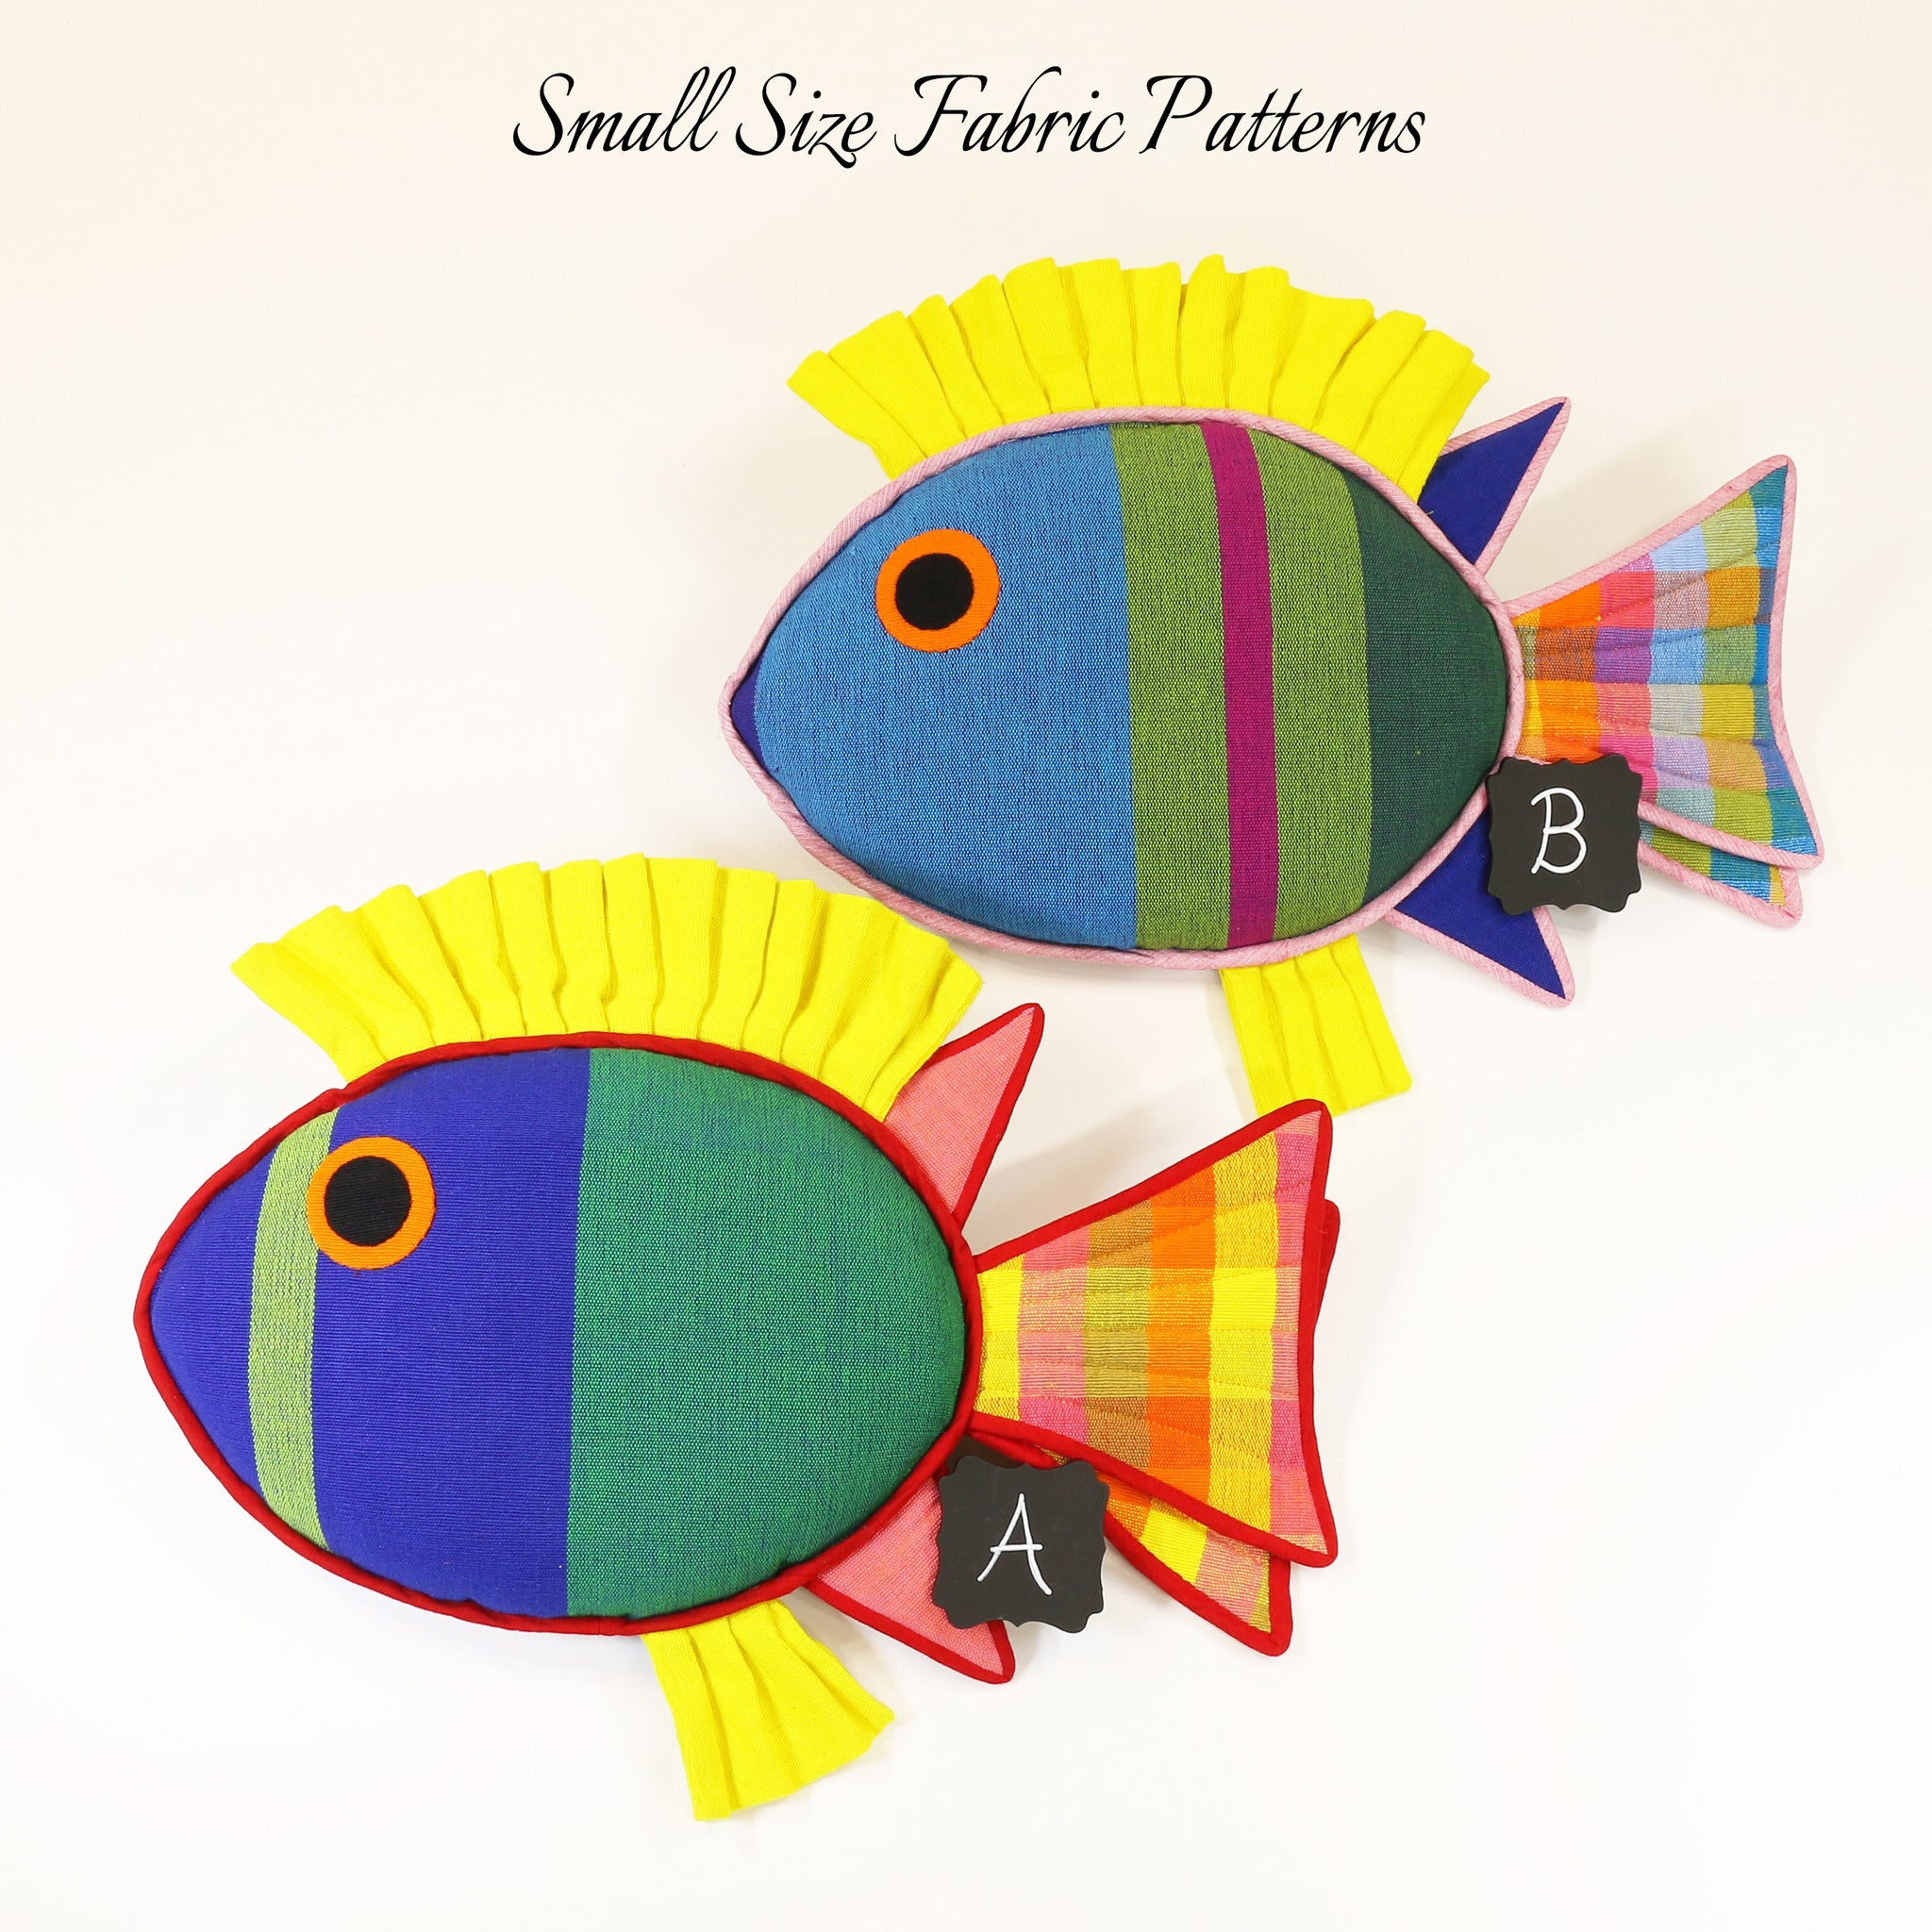 Levi, the Rabbit Fish – small size fabric patterns shown